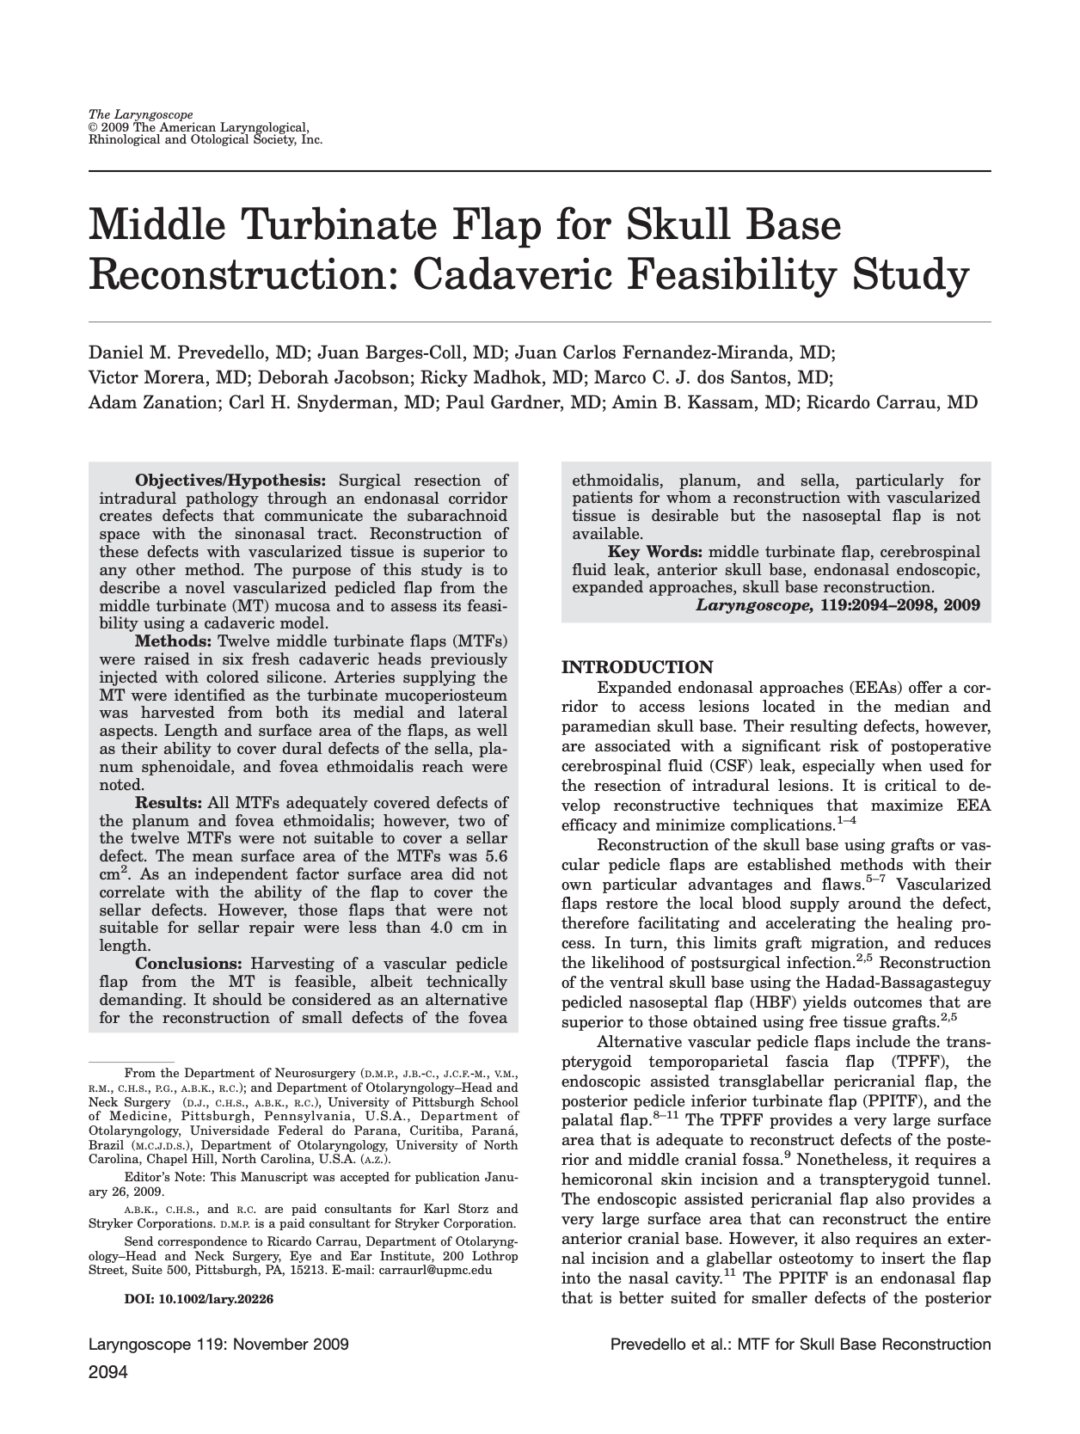 Middle Turbinate Flap for Skull Base Reconstruction: Cadaveric Feasibility Study